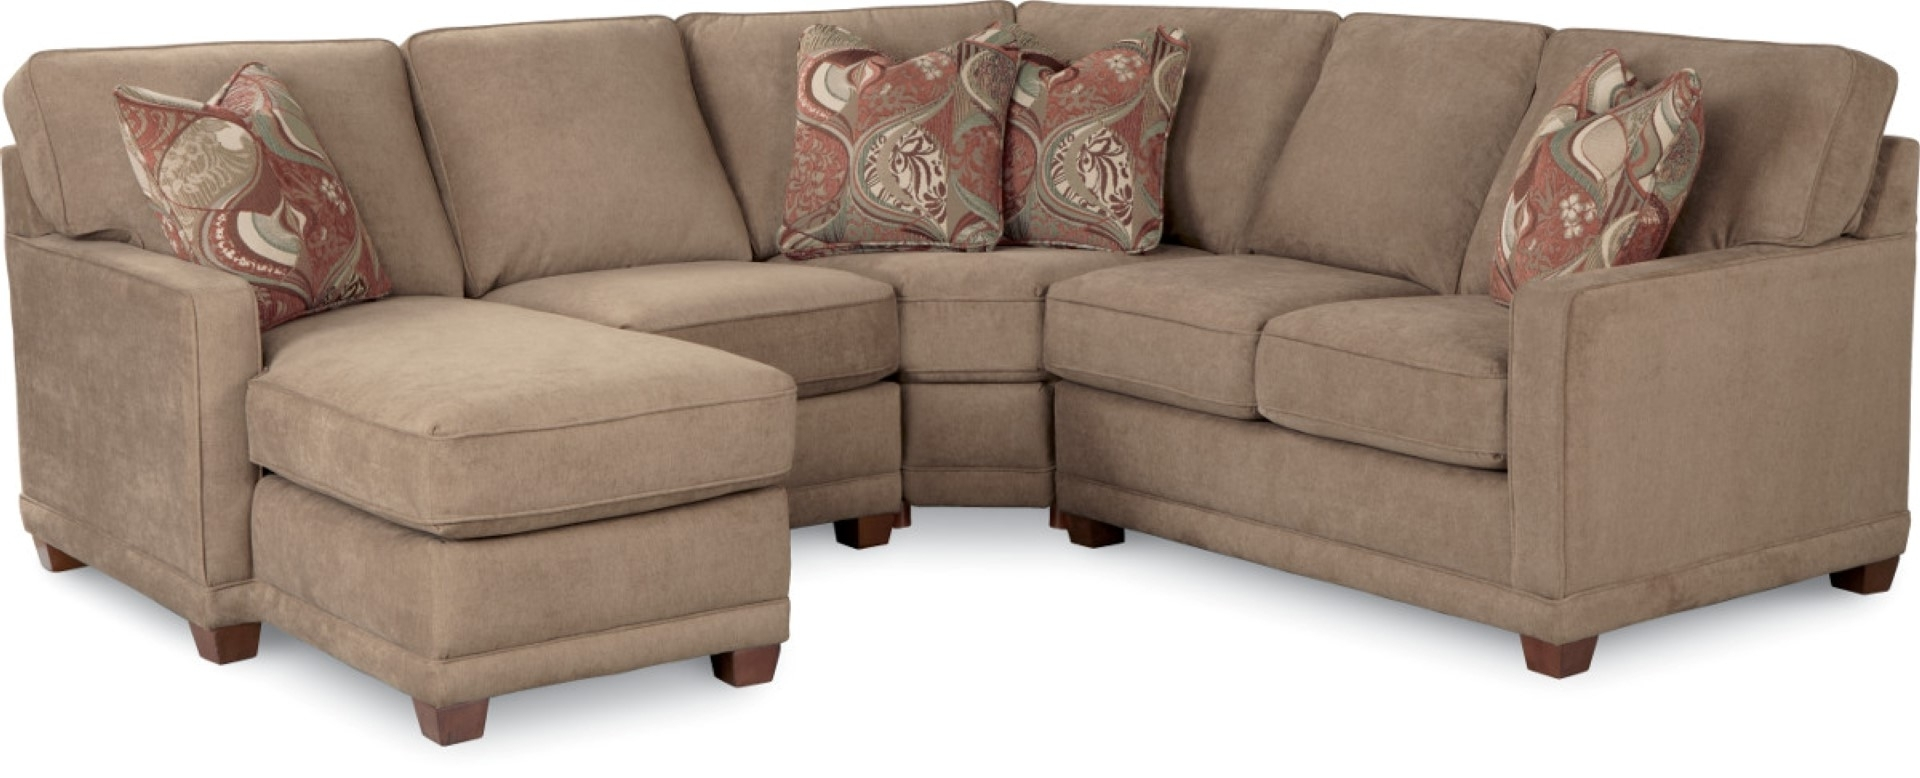 Lazy Boy Sectional Sofas In Well Known Kennedy Sectional Sofa – Town & Country Furniture (View 11 of 20)